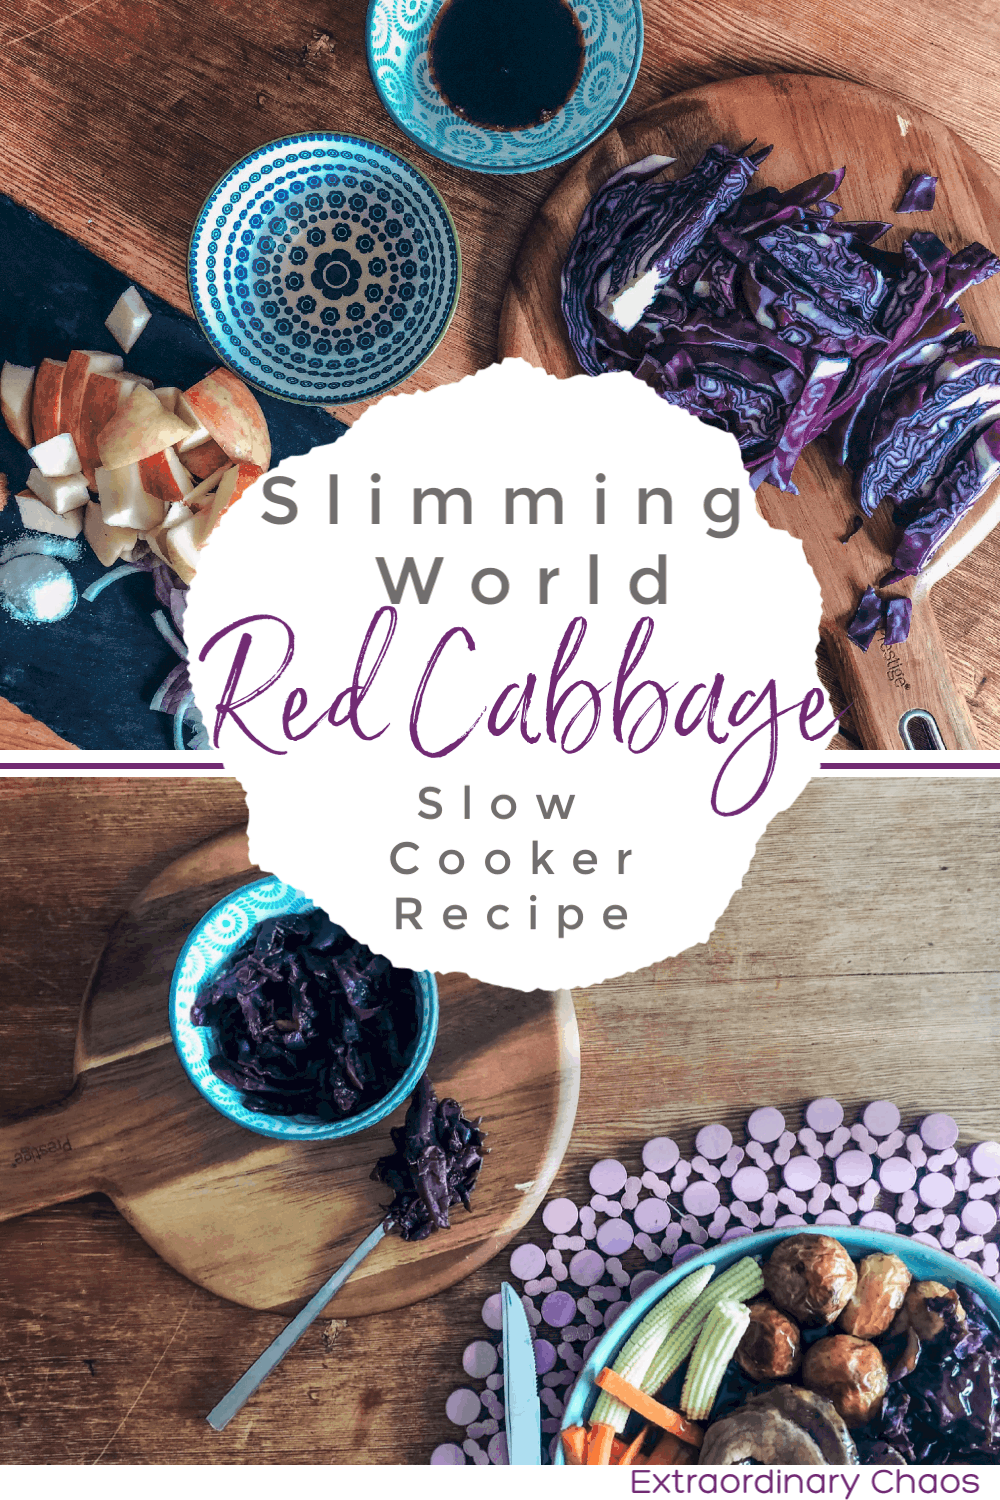 Slimming World Slow Cooker Red Cabbage Recipe